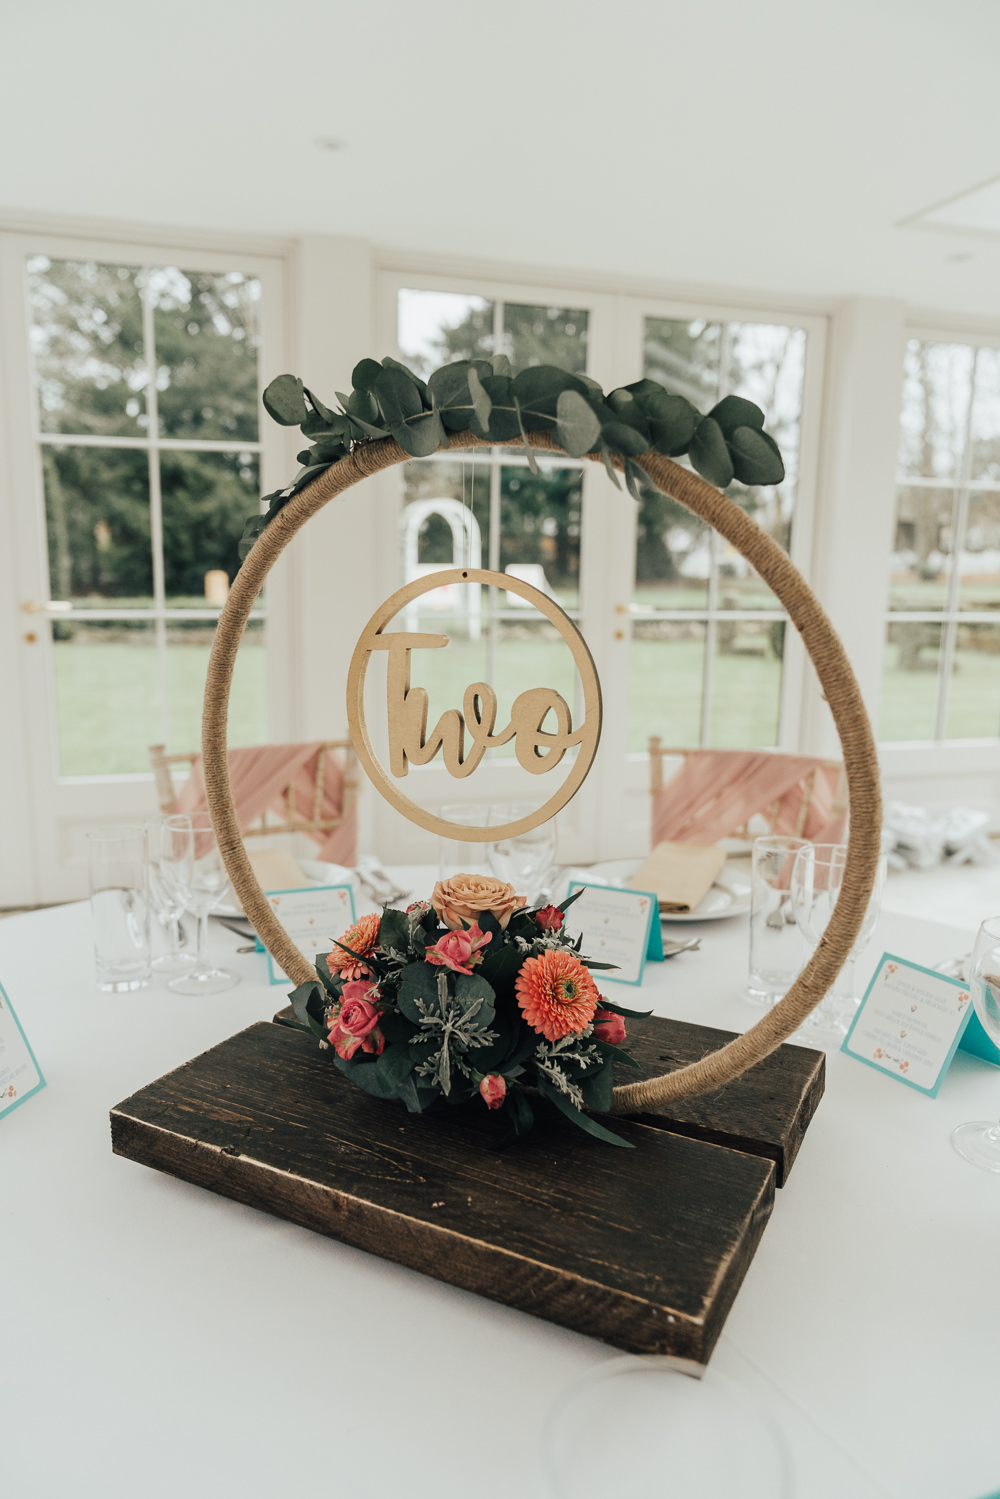 Table Number Name Decor Floral Hoop Wedding Ideas Rebecca Carpenter Photography